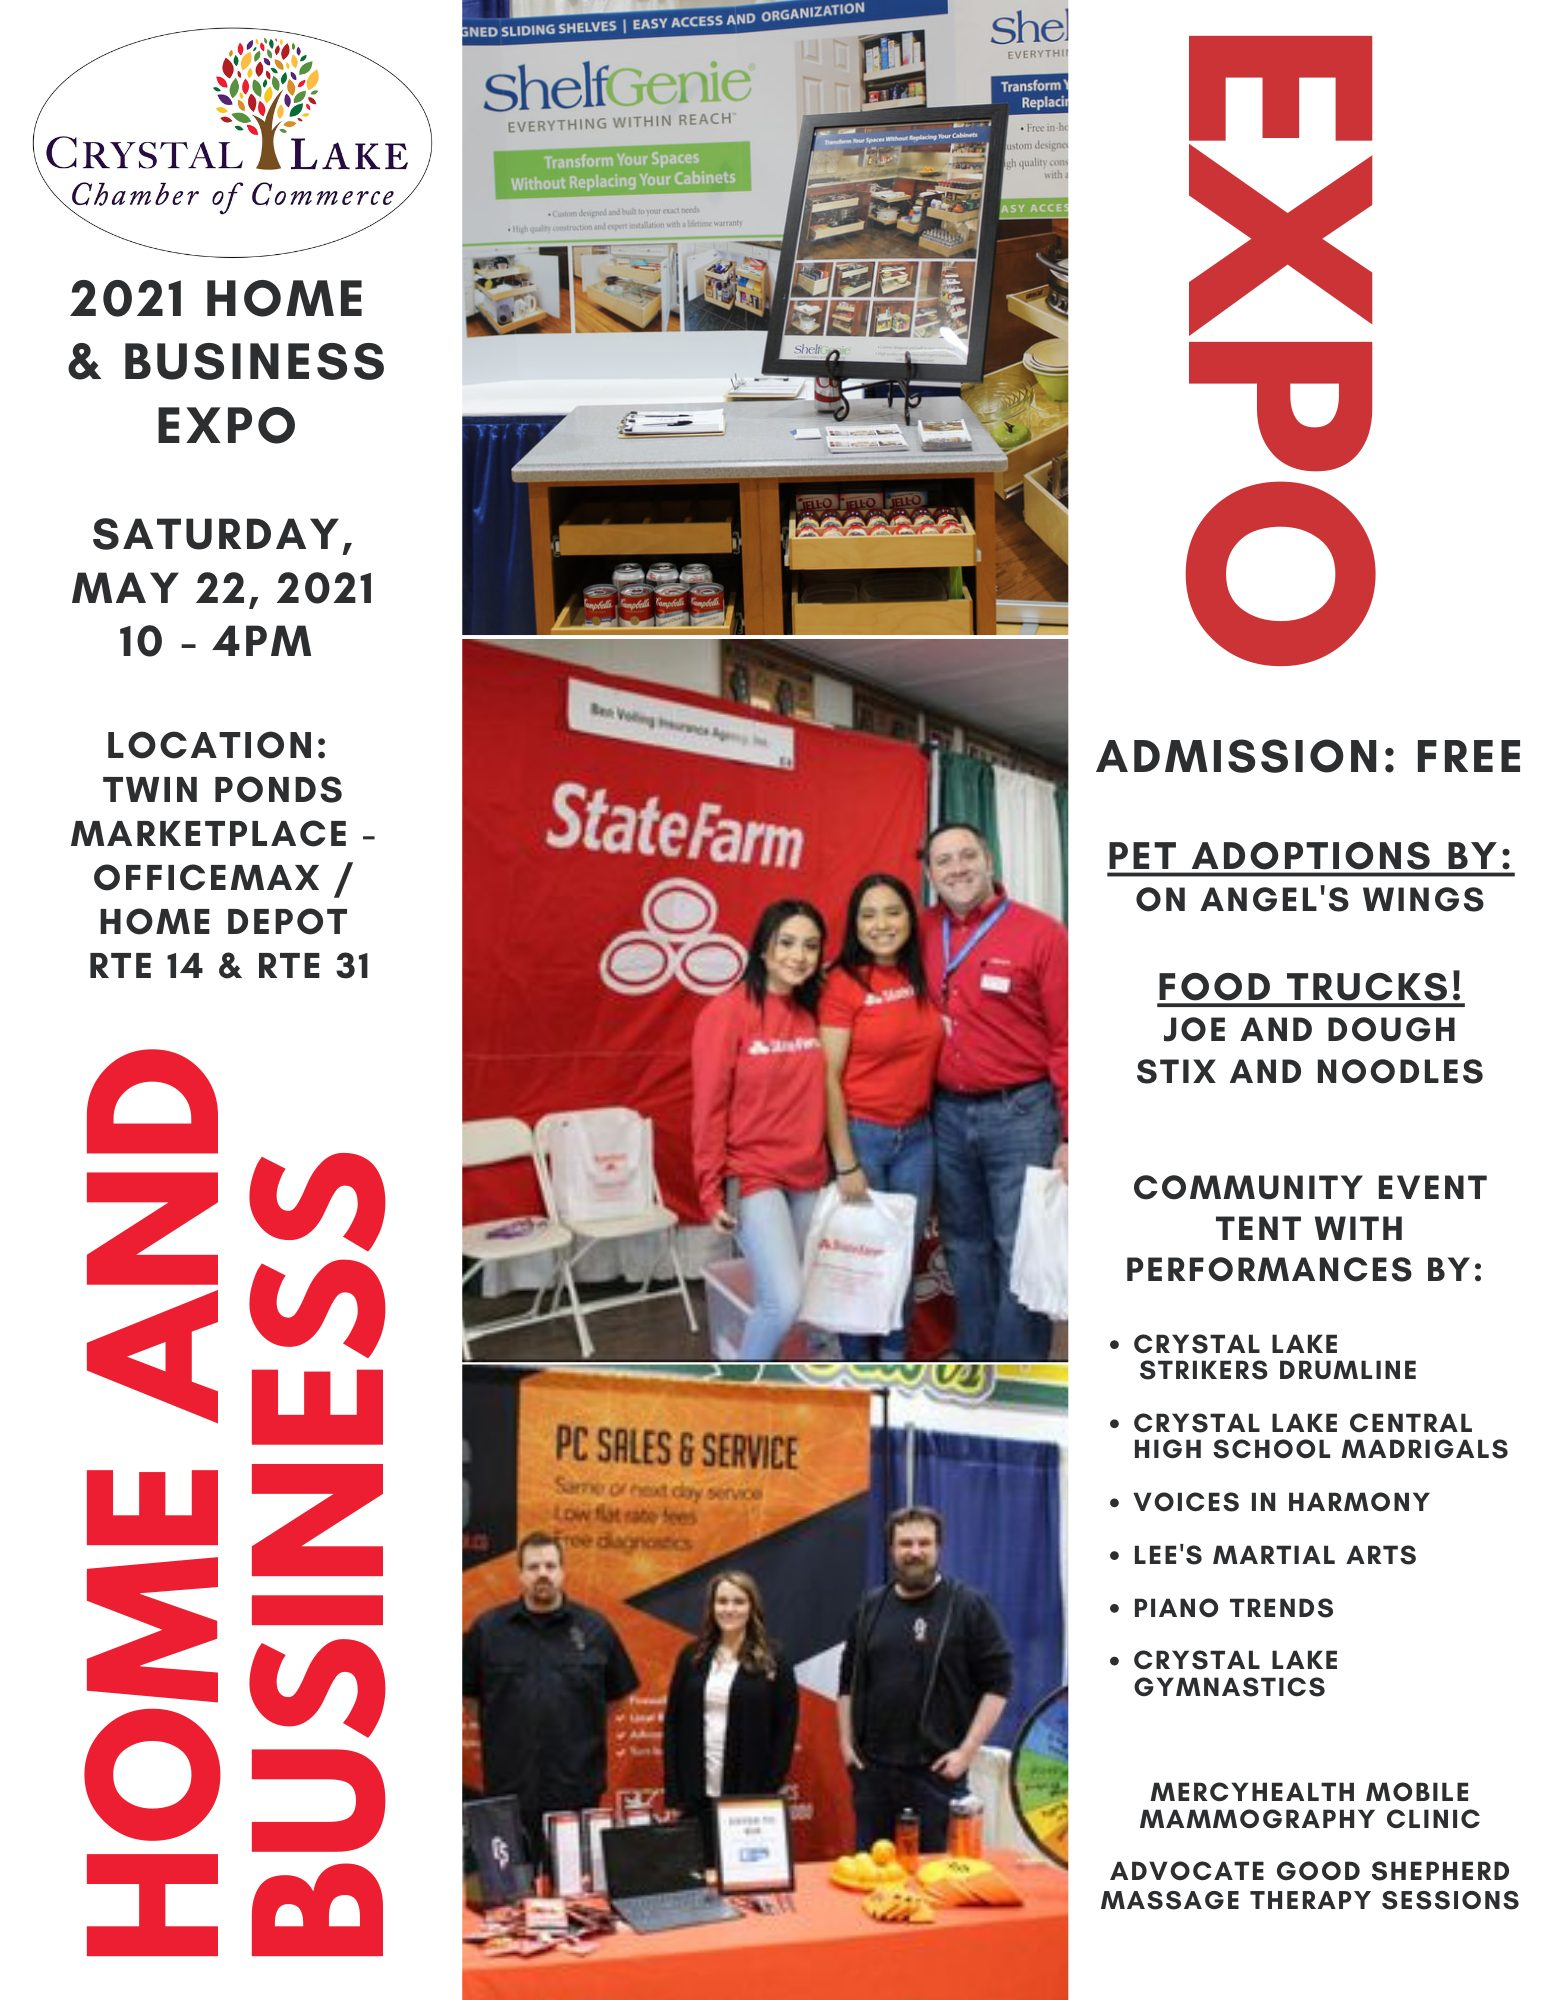 Copy of 2021 home and business expo flyer